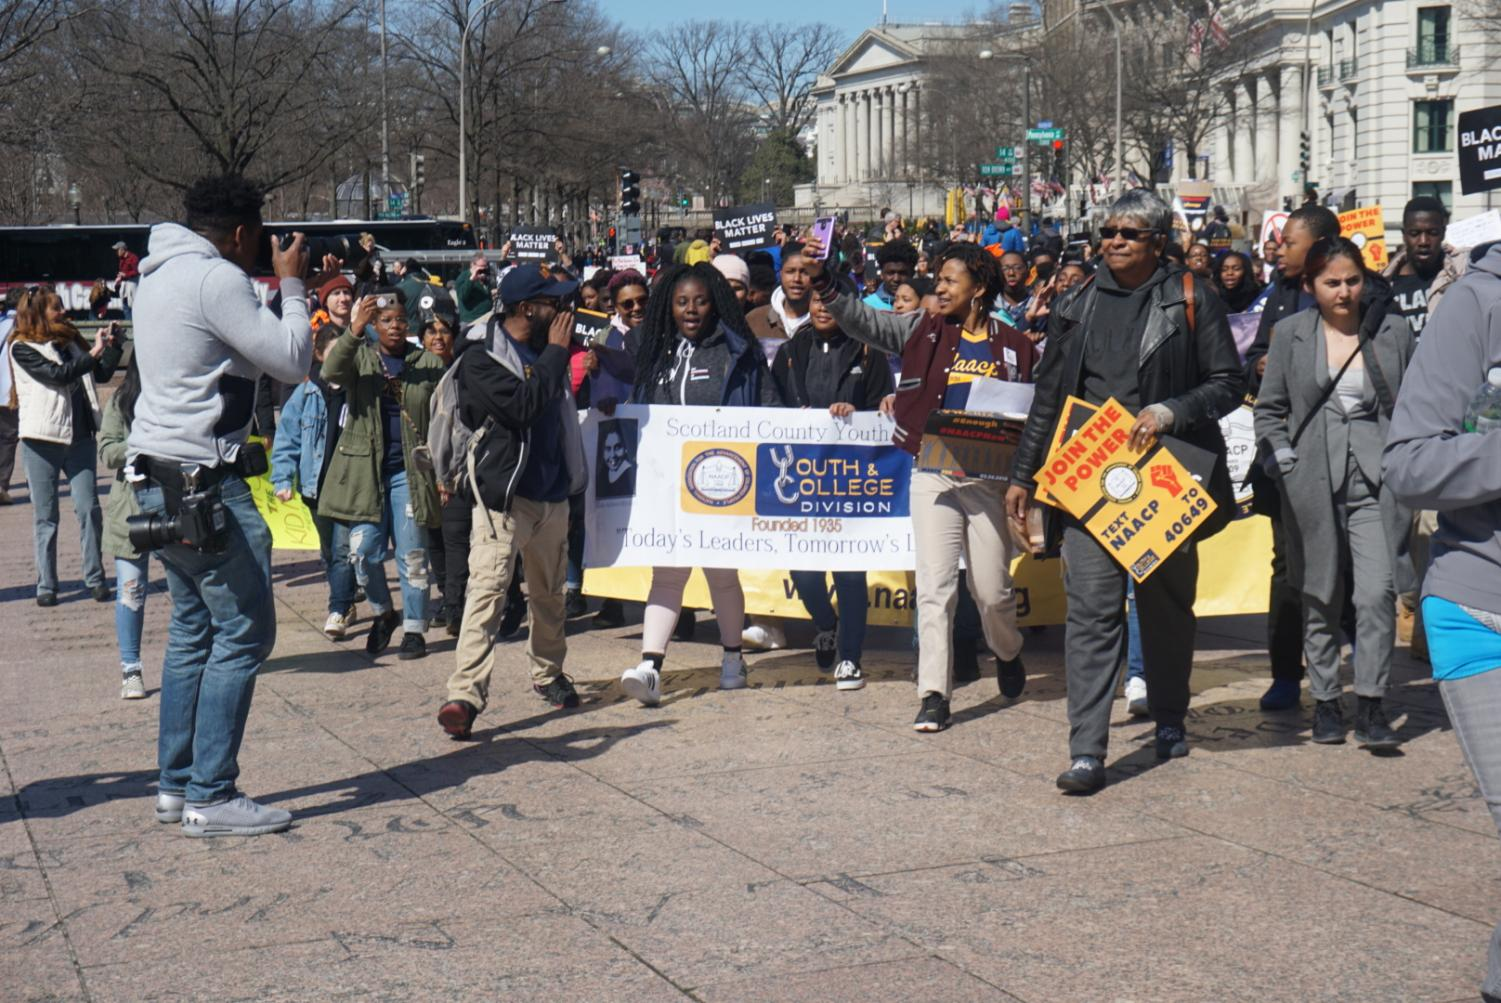 Gables+students+attend+the+Washington+D.C.+March+for+Our+Lives+event.